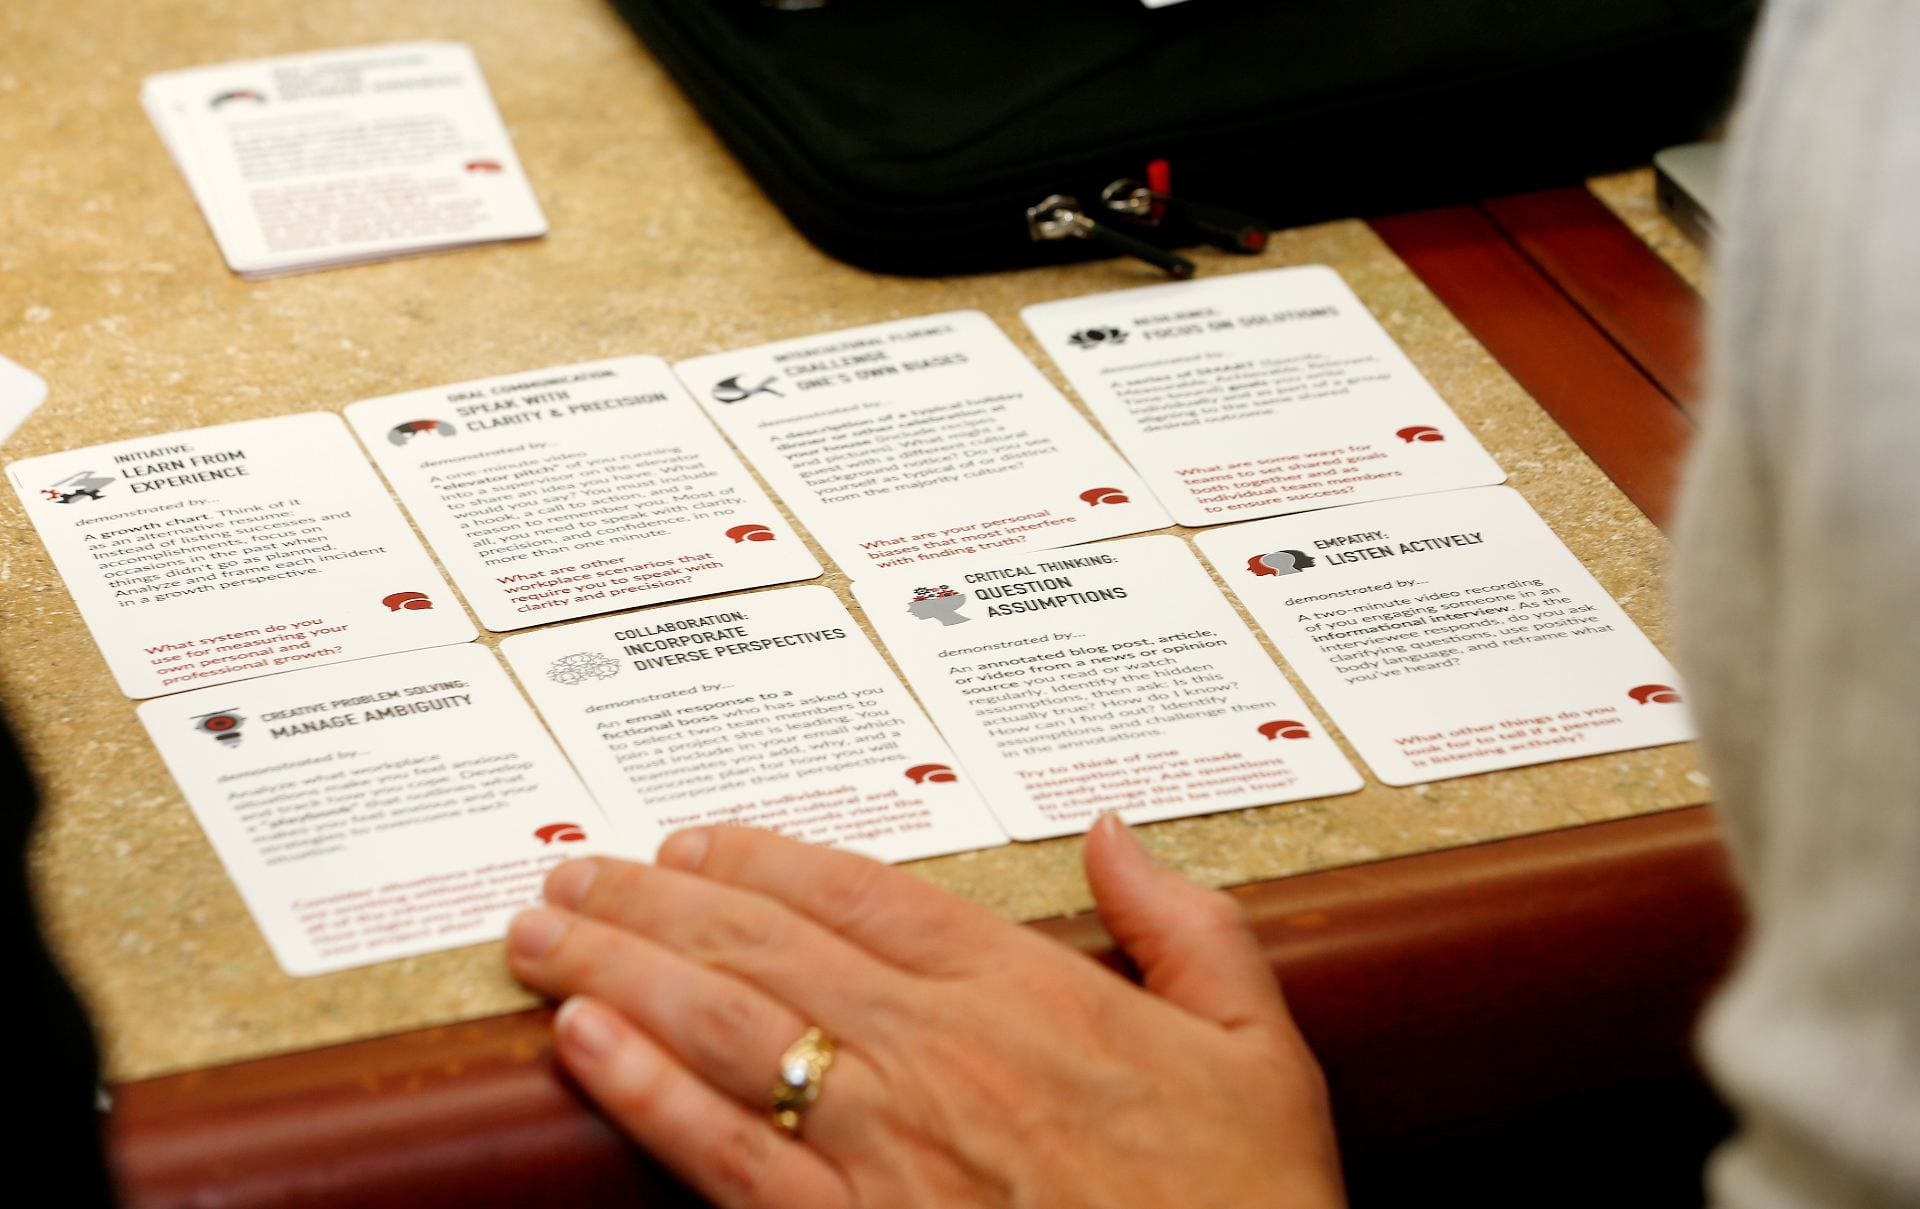 Cards display descriptions of some of the skills needed to acquire the eight digital badges Education Design Lab has created. ( Josie Lepe/San Jose State University )